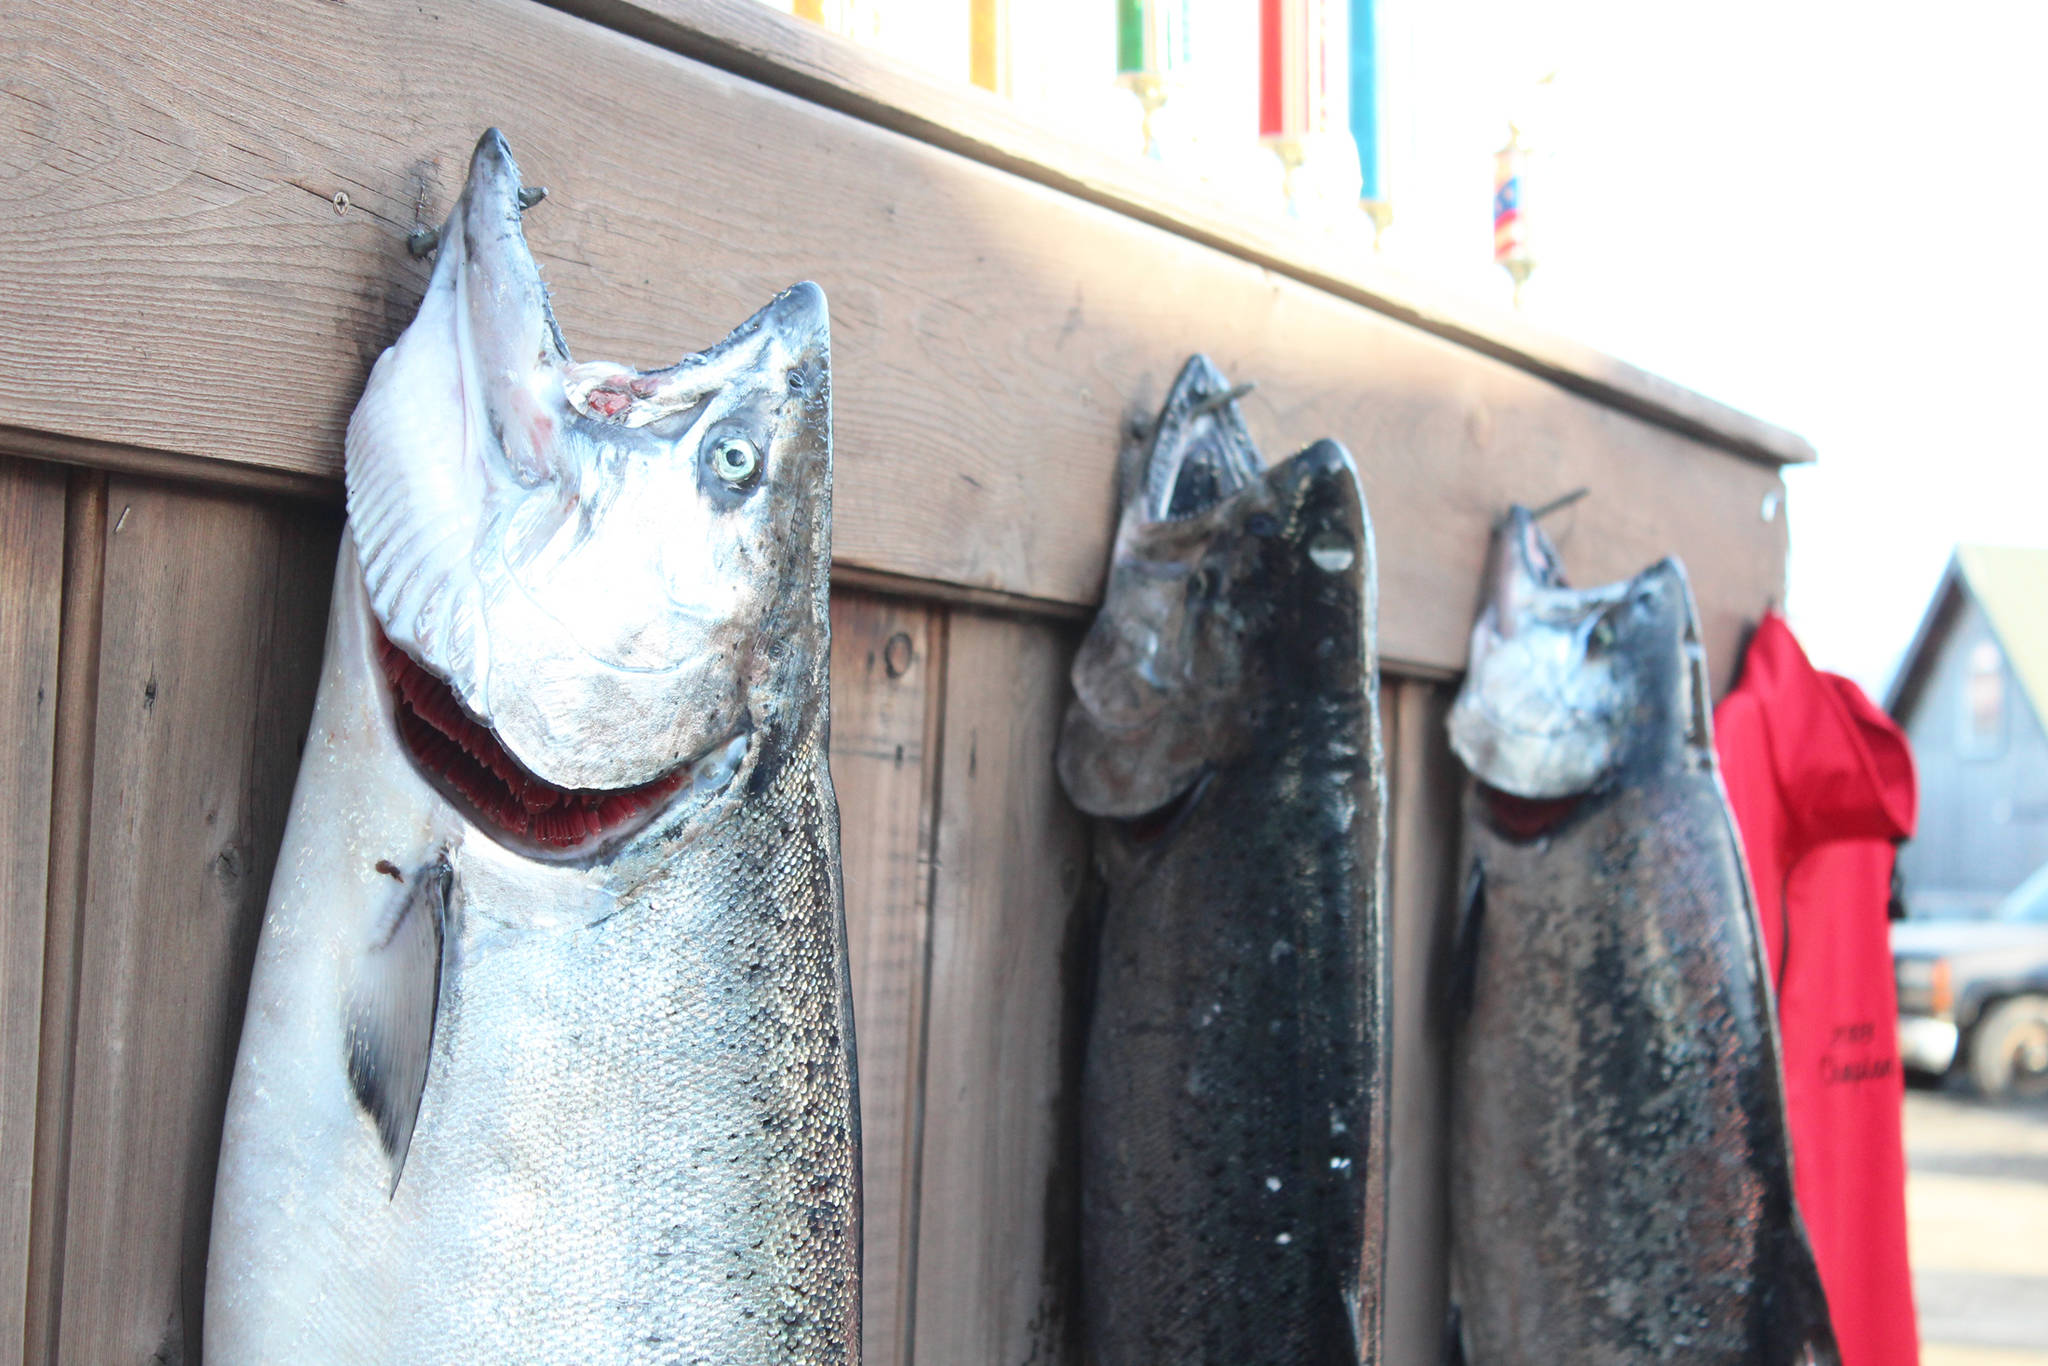 The top three fish of this year's Winter King Salmon Tournament hang on a wall before a closing ceremony announcing the winners Saturday, March 24, 2018 on the Spit in Homer, Alaska. This year's winning fish weighed 24.6 pounds. (Photo by Megan Pacer/Homer News)